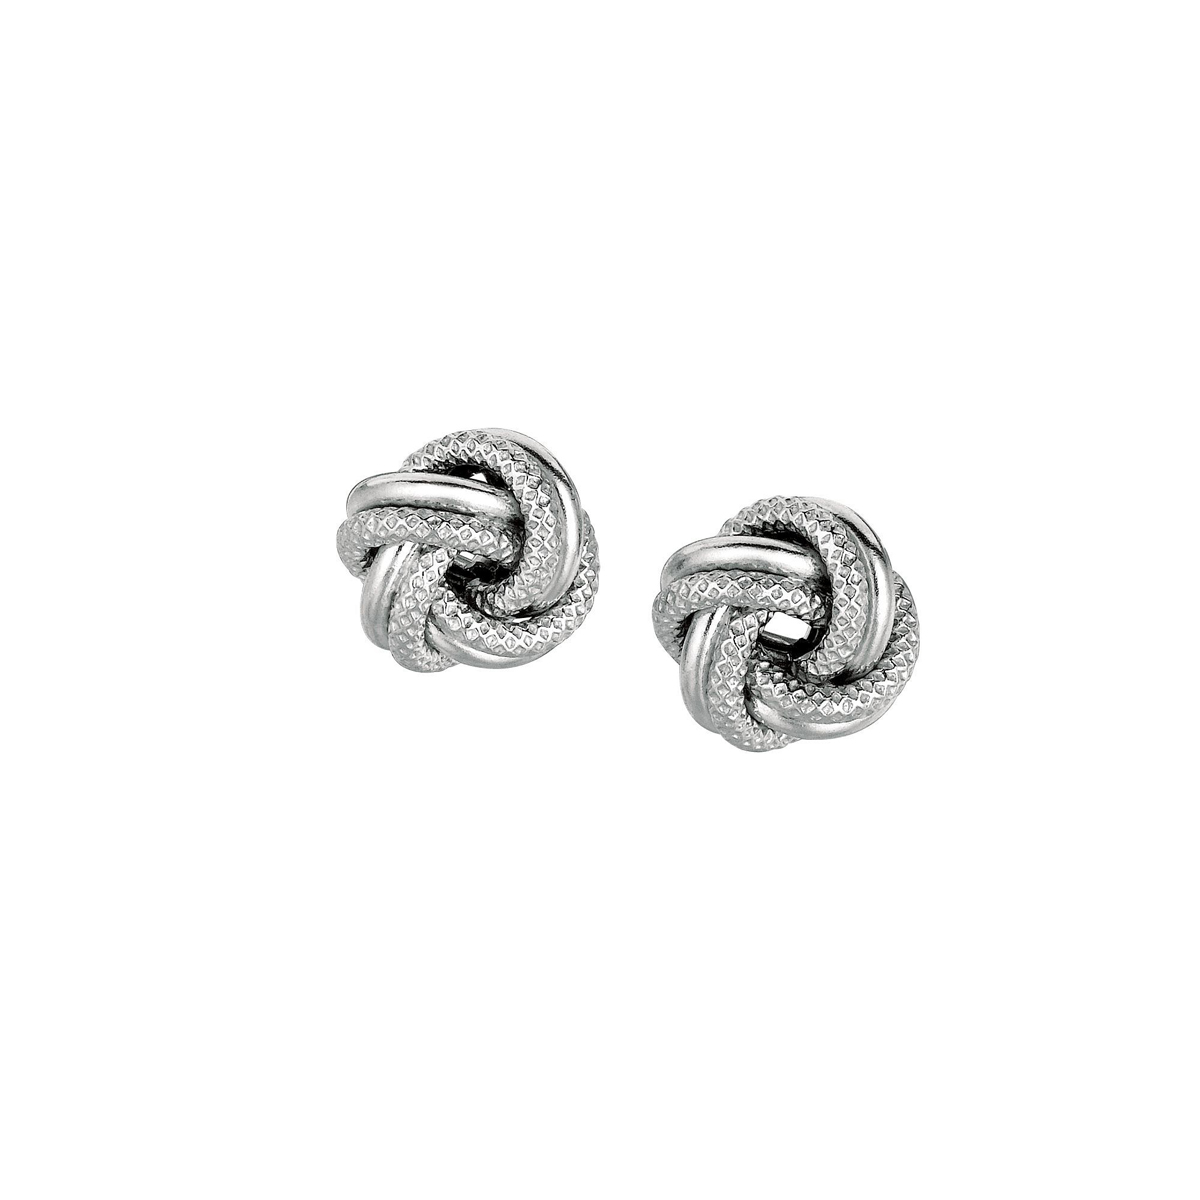 Royal Chain Sterling Silver Love Knot Earrings